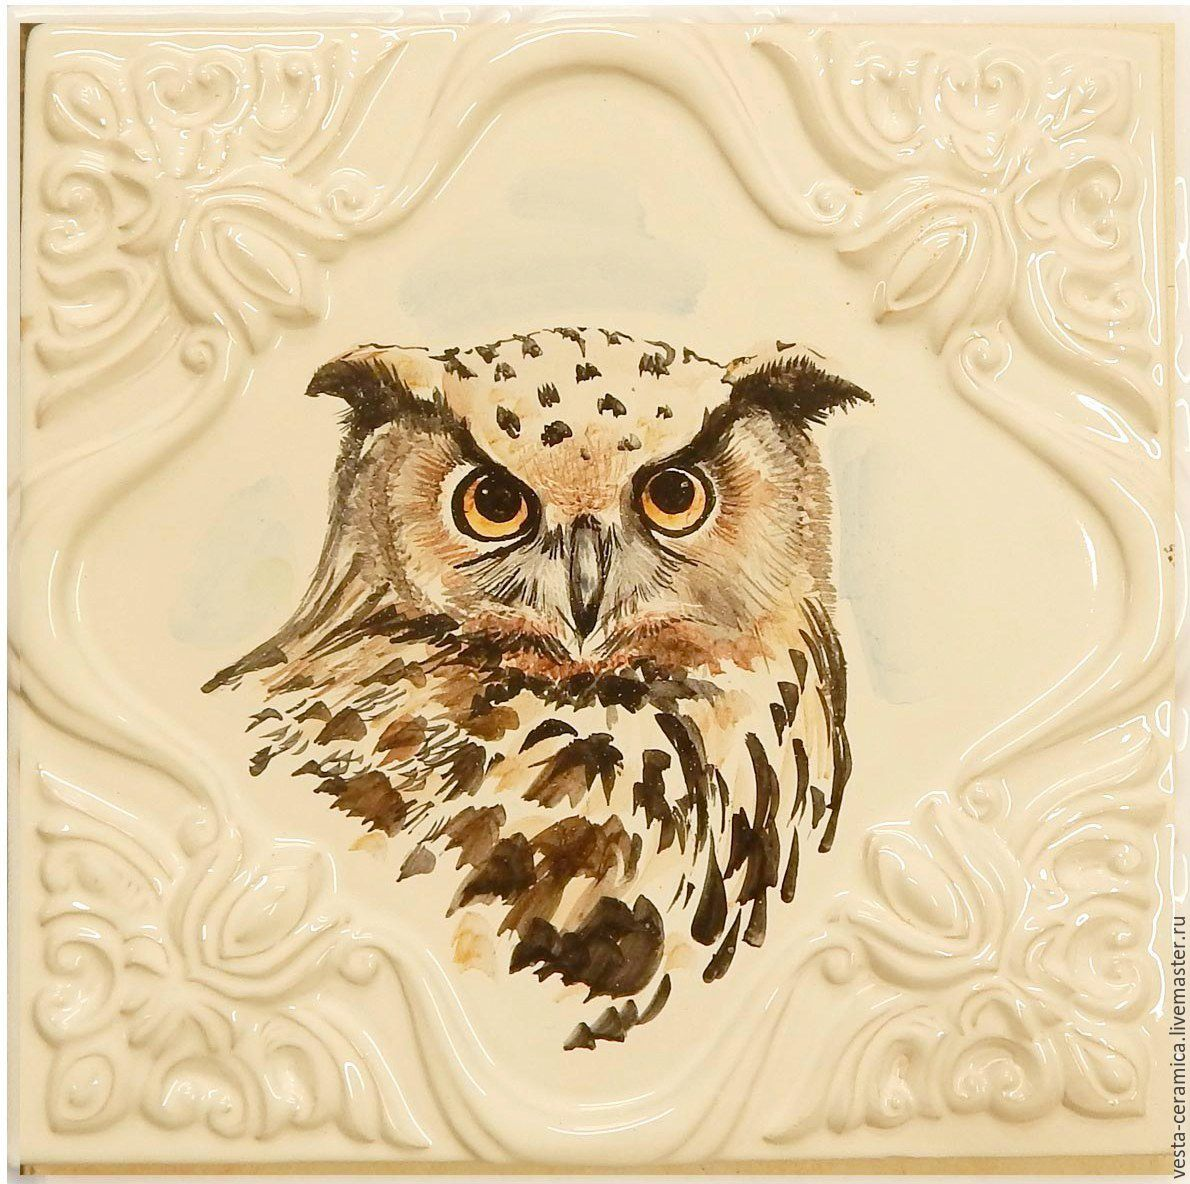 The relief tile with image of an owl